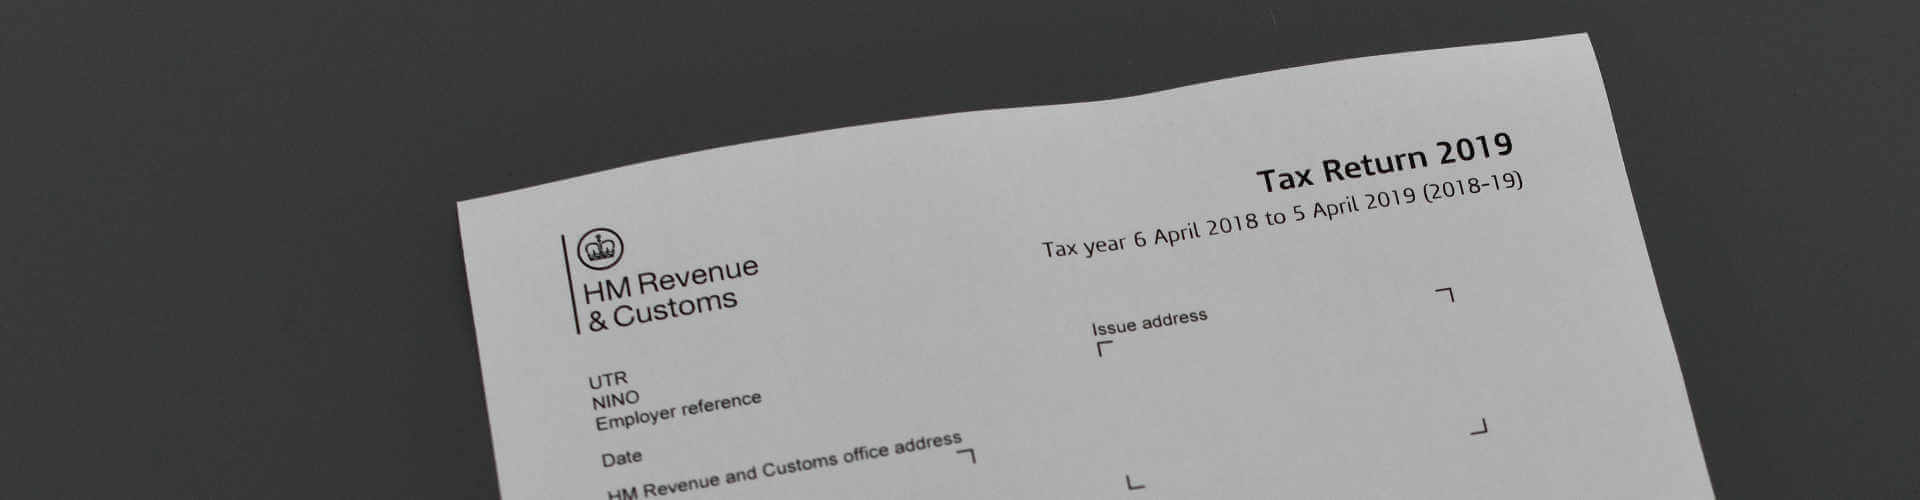 tax-return form